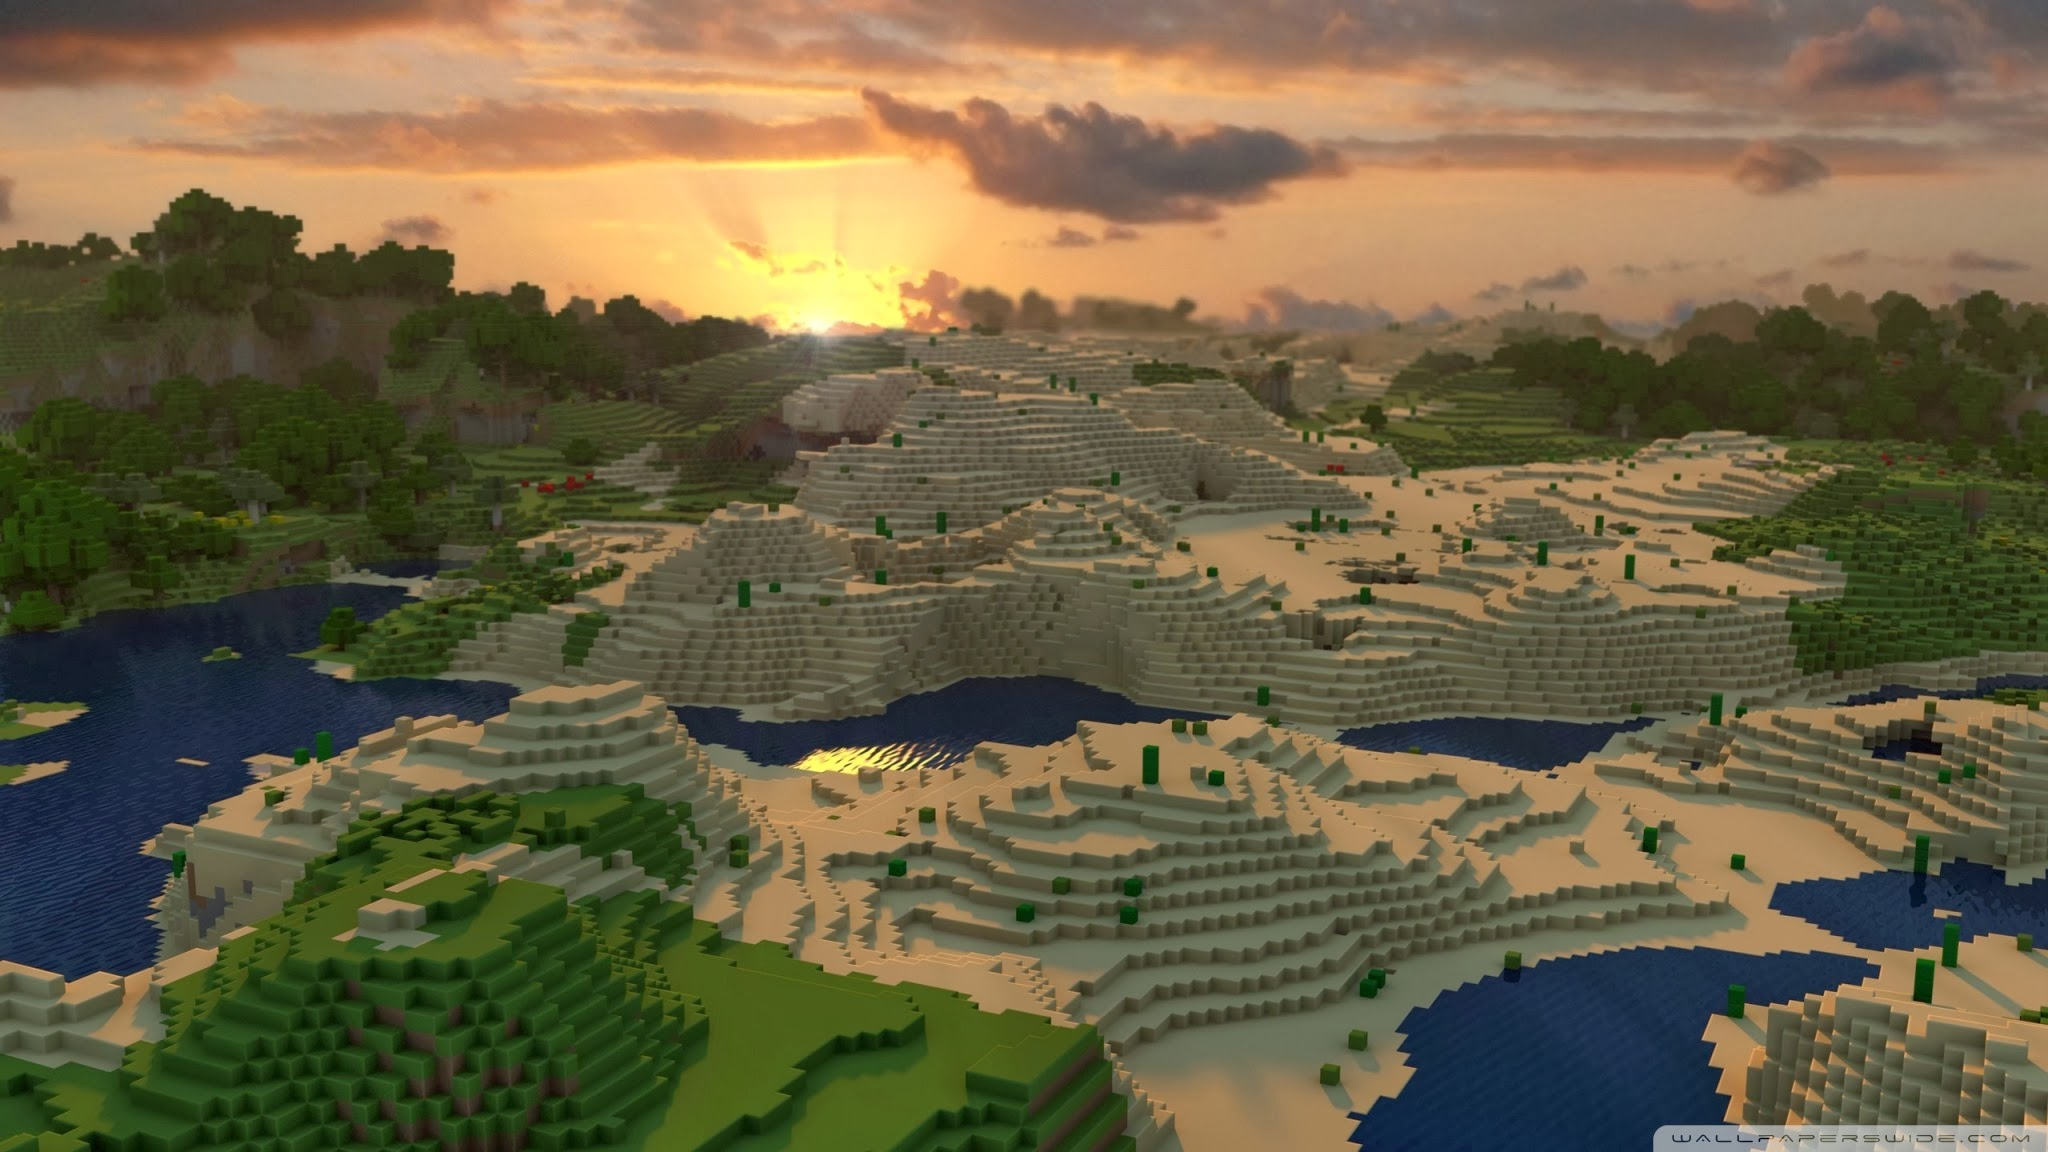 2048X1152 MINECRAFT WALLPAPER image galleries   imageKBcom 2048x1152